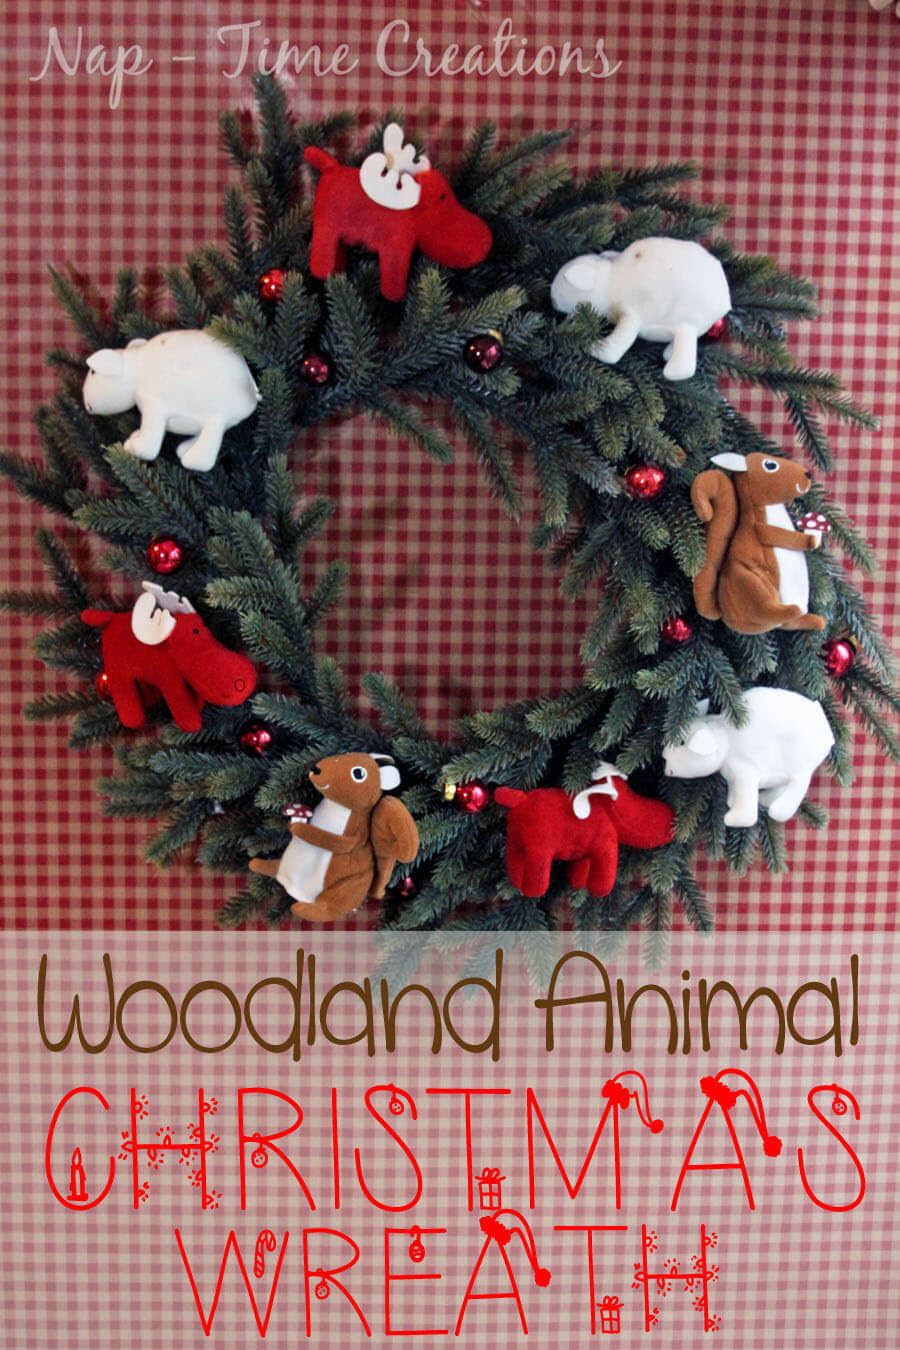 Woodland Animal Christmas Wreath by Nap-Time Creations